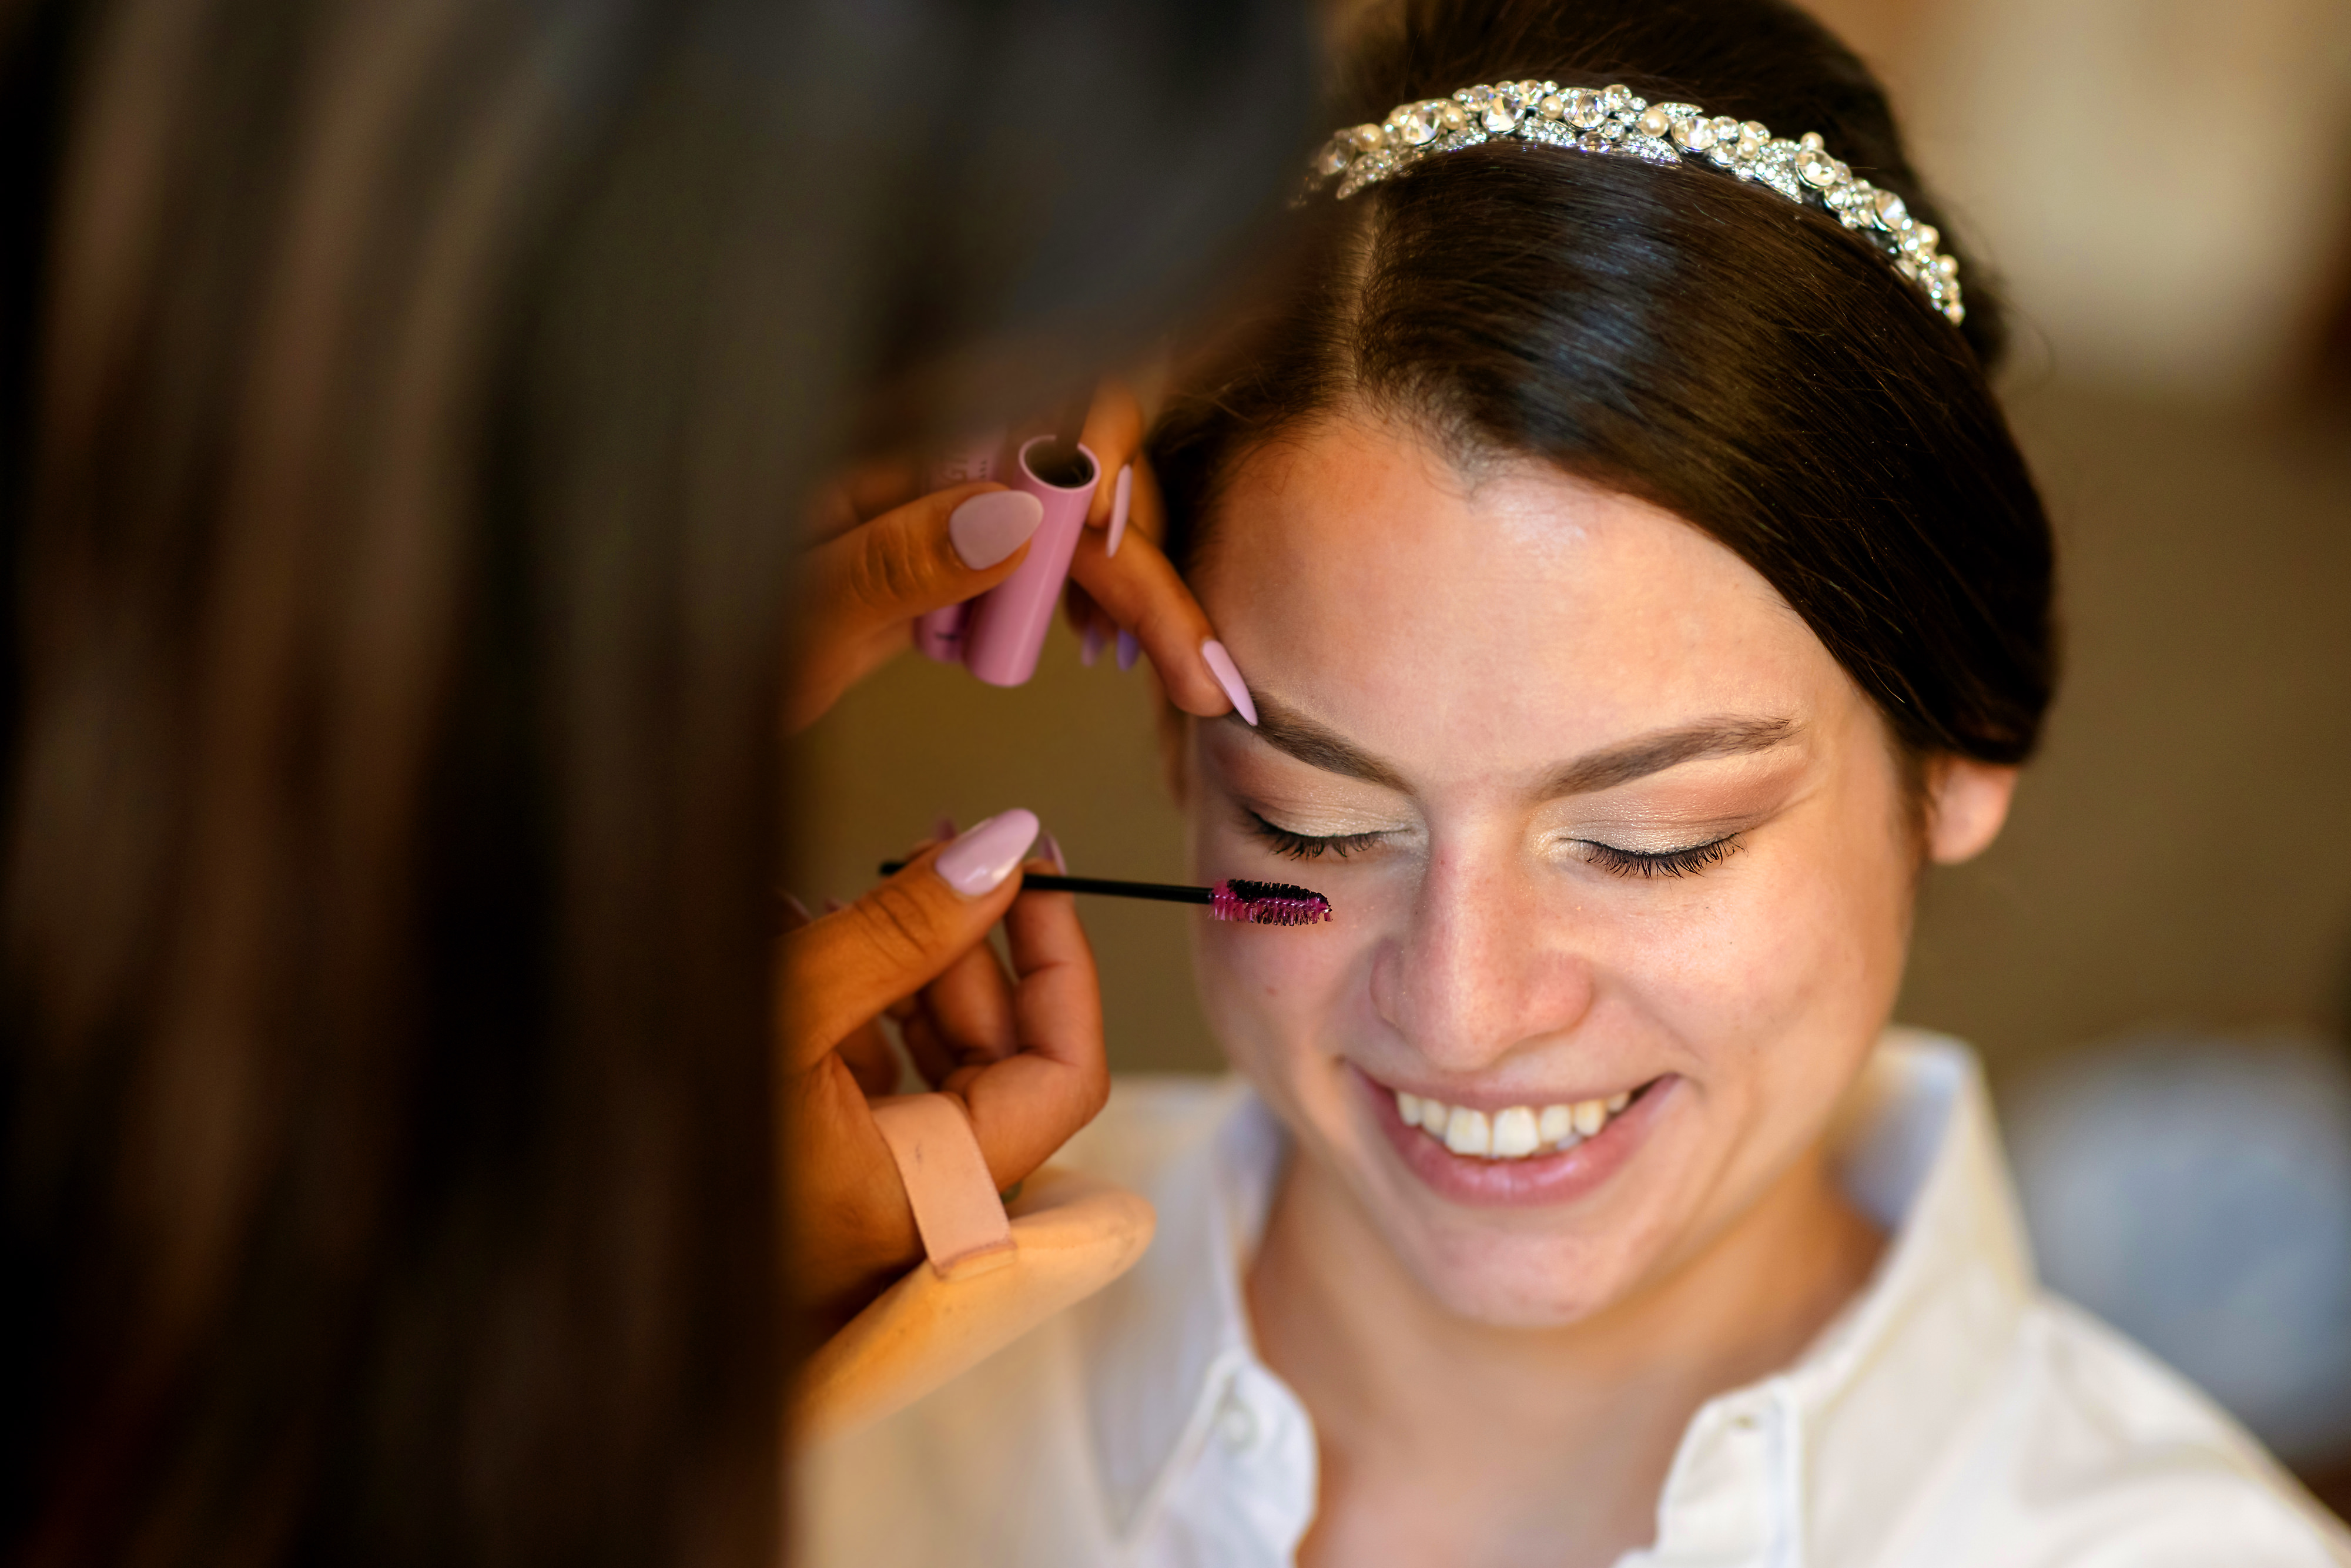 Bride has her makeup done while getting ready for a wedding